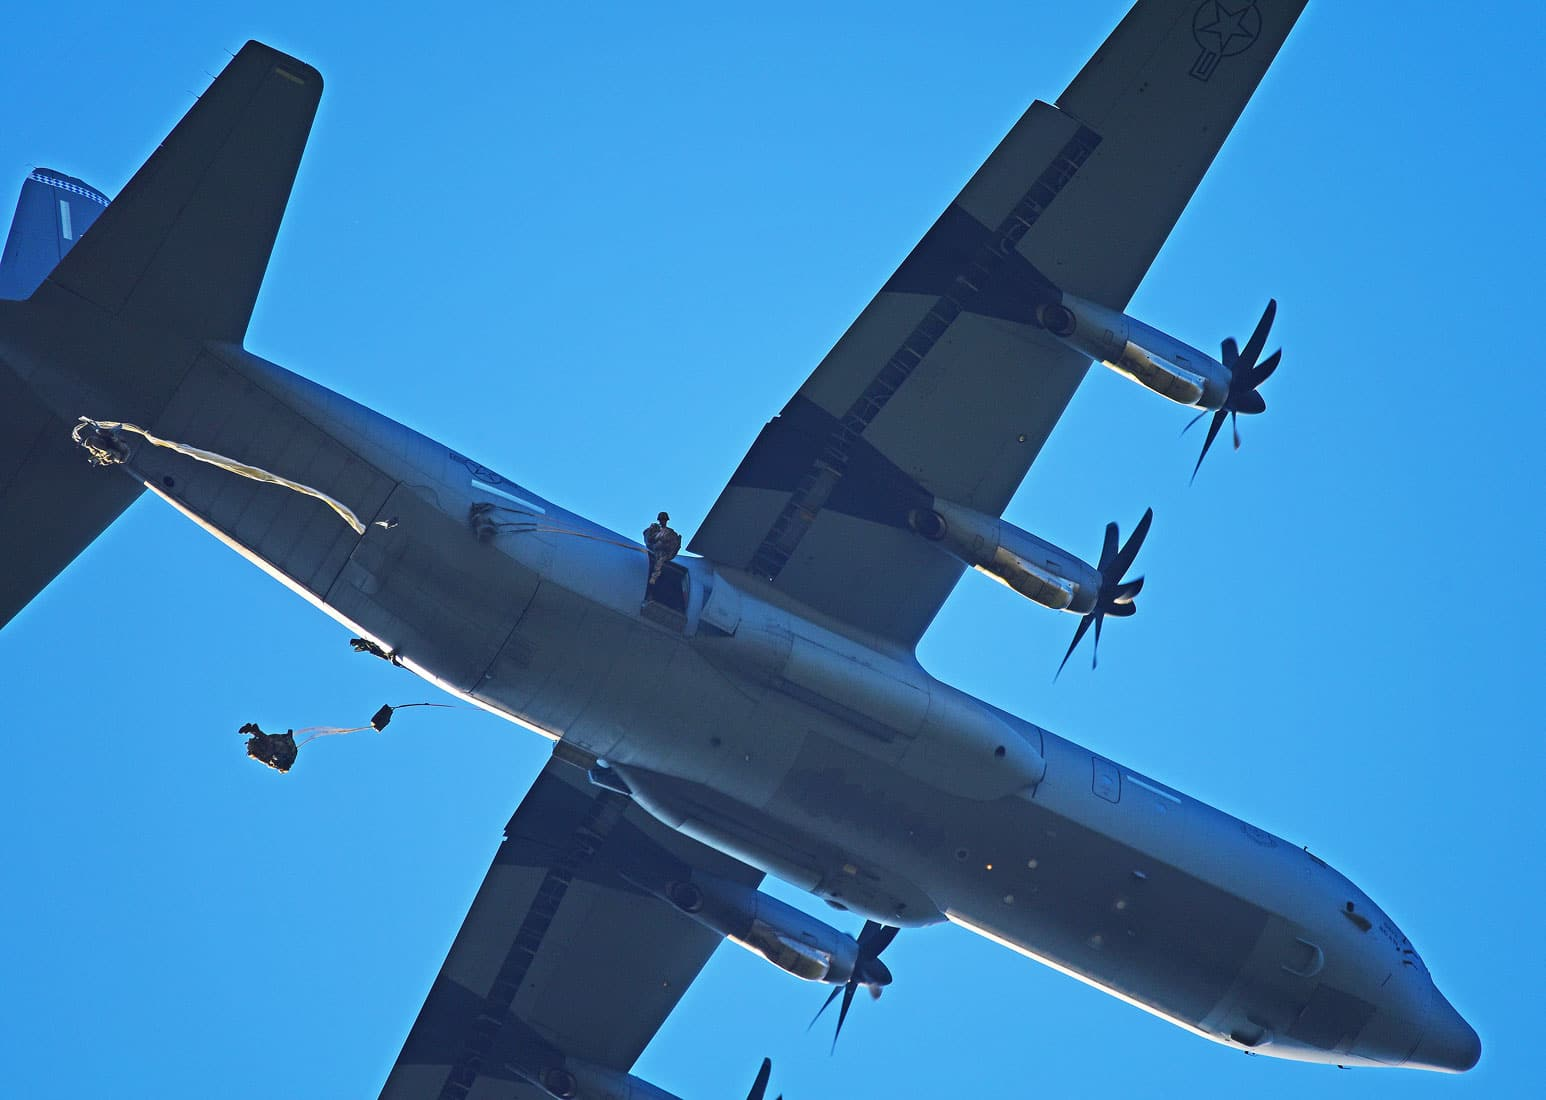 U.S. Army Paratroopers assigned to the 173rd Brigade Support Battalion, 173rd Airborne Brigade, conduct an airborne operation from a U.S. Air Force 86th Air Wing C-130 Hercules aircraft at Frida Drop Zone in Pordenone, Italy.